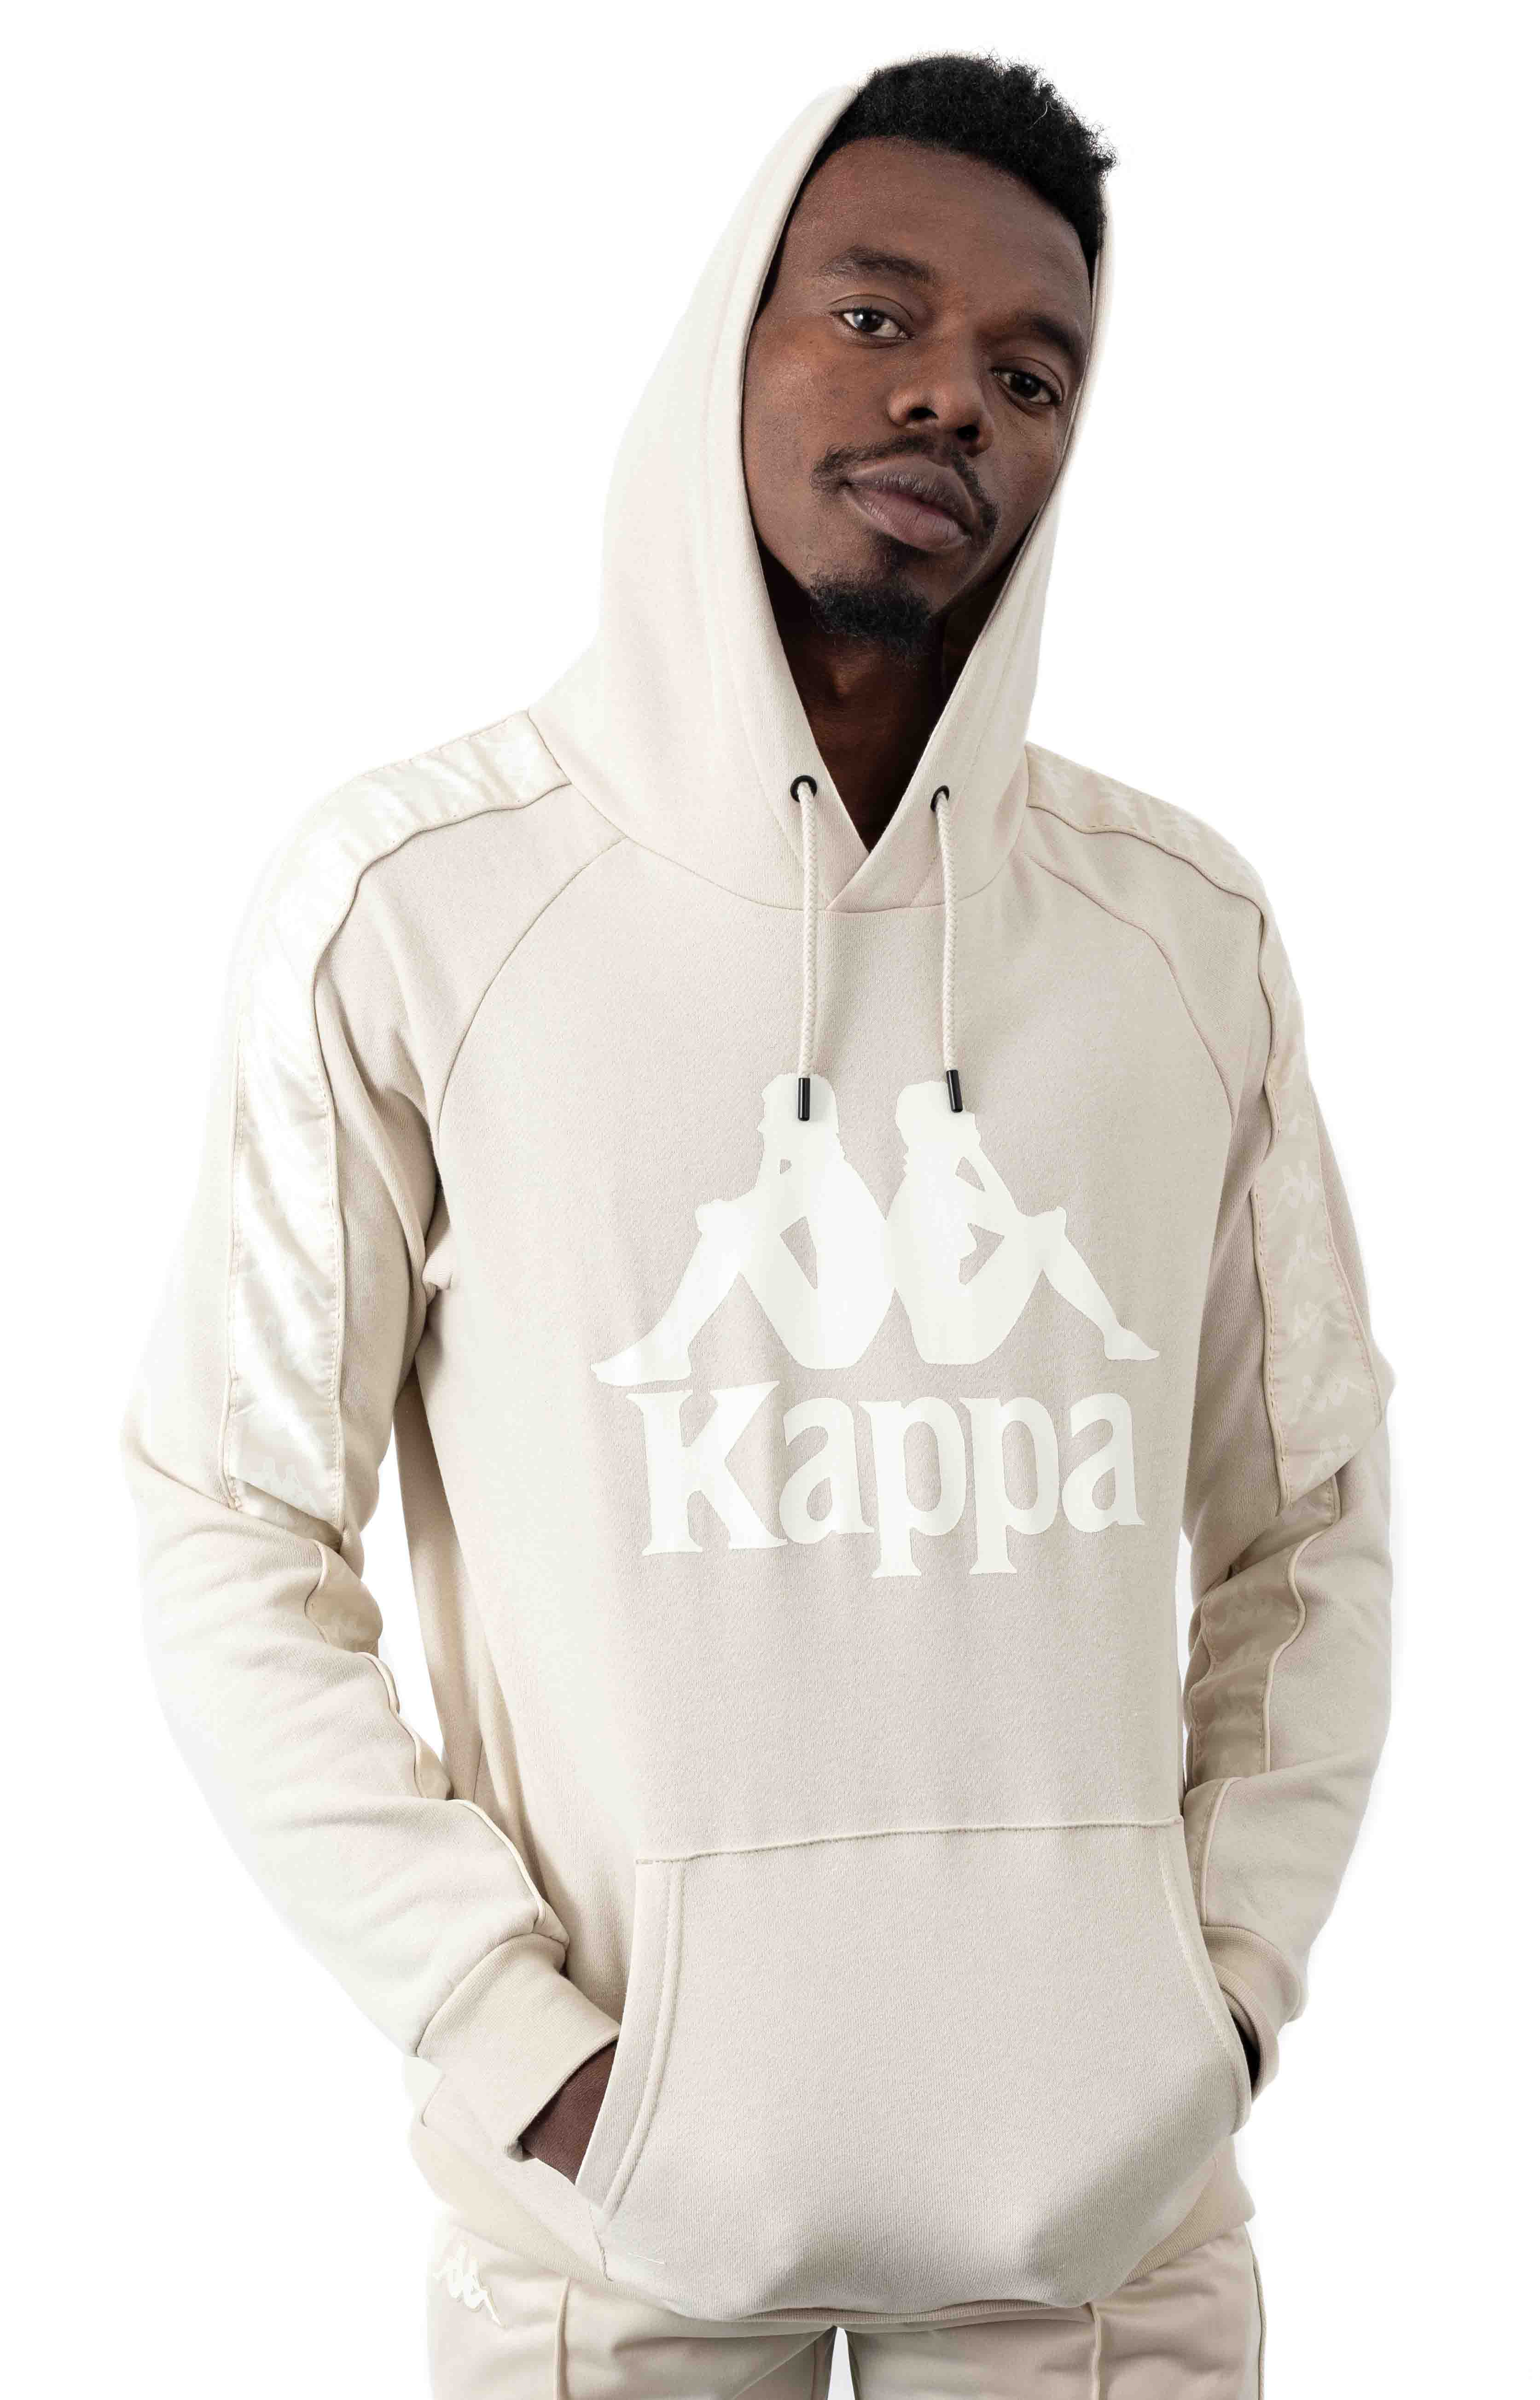 Authentic Hurtado Pullover Hoodie - Beige/White